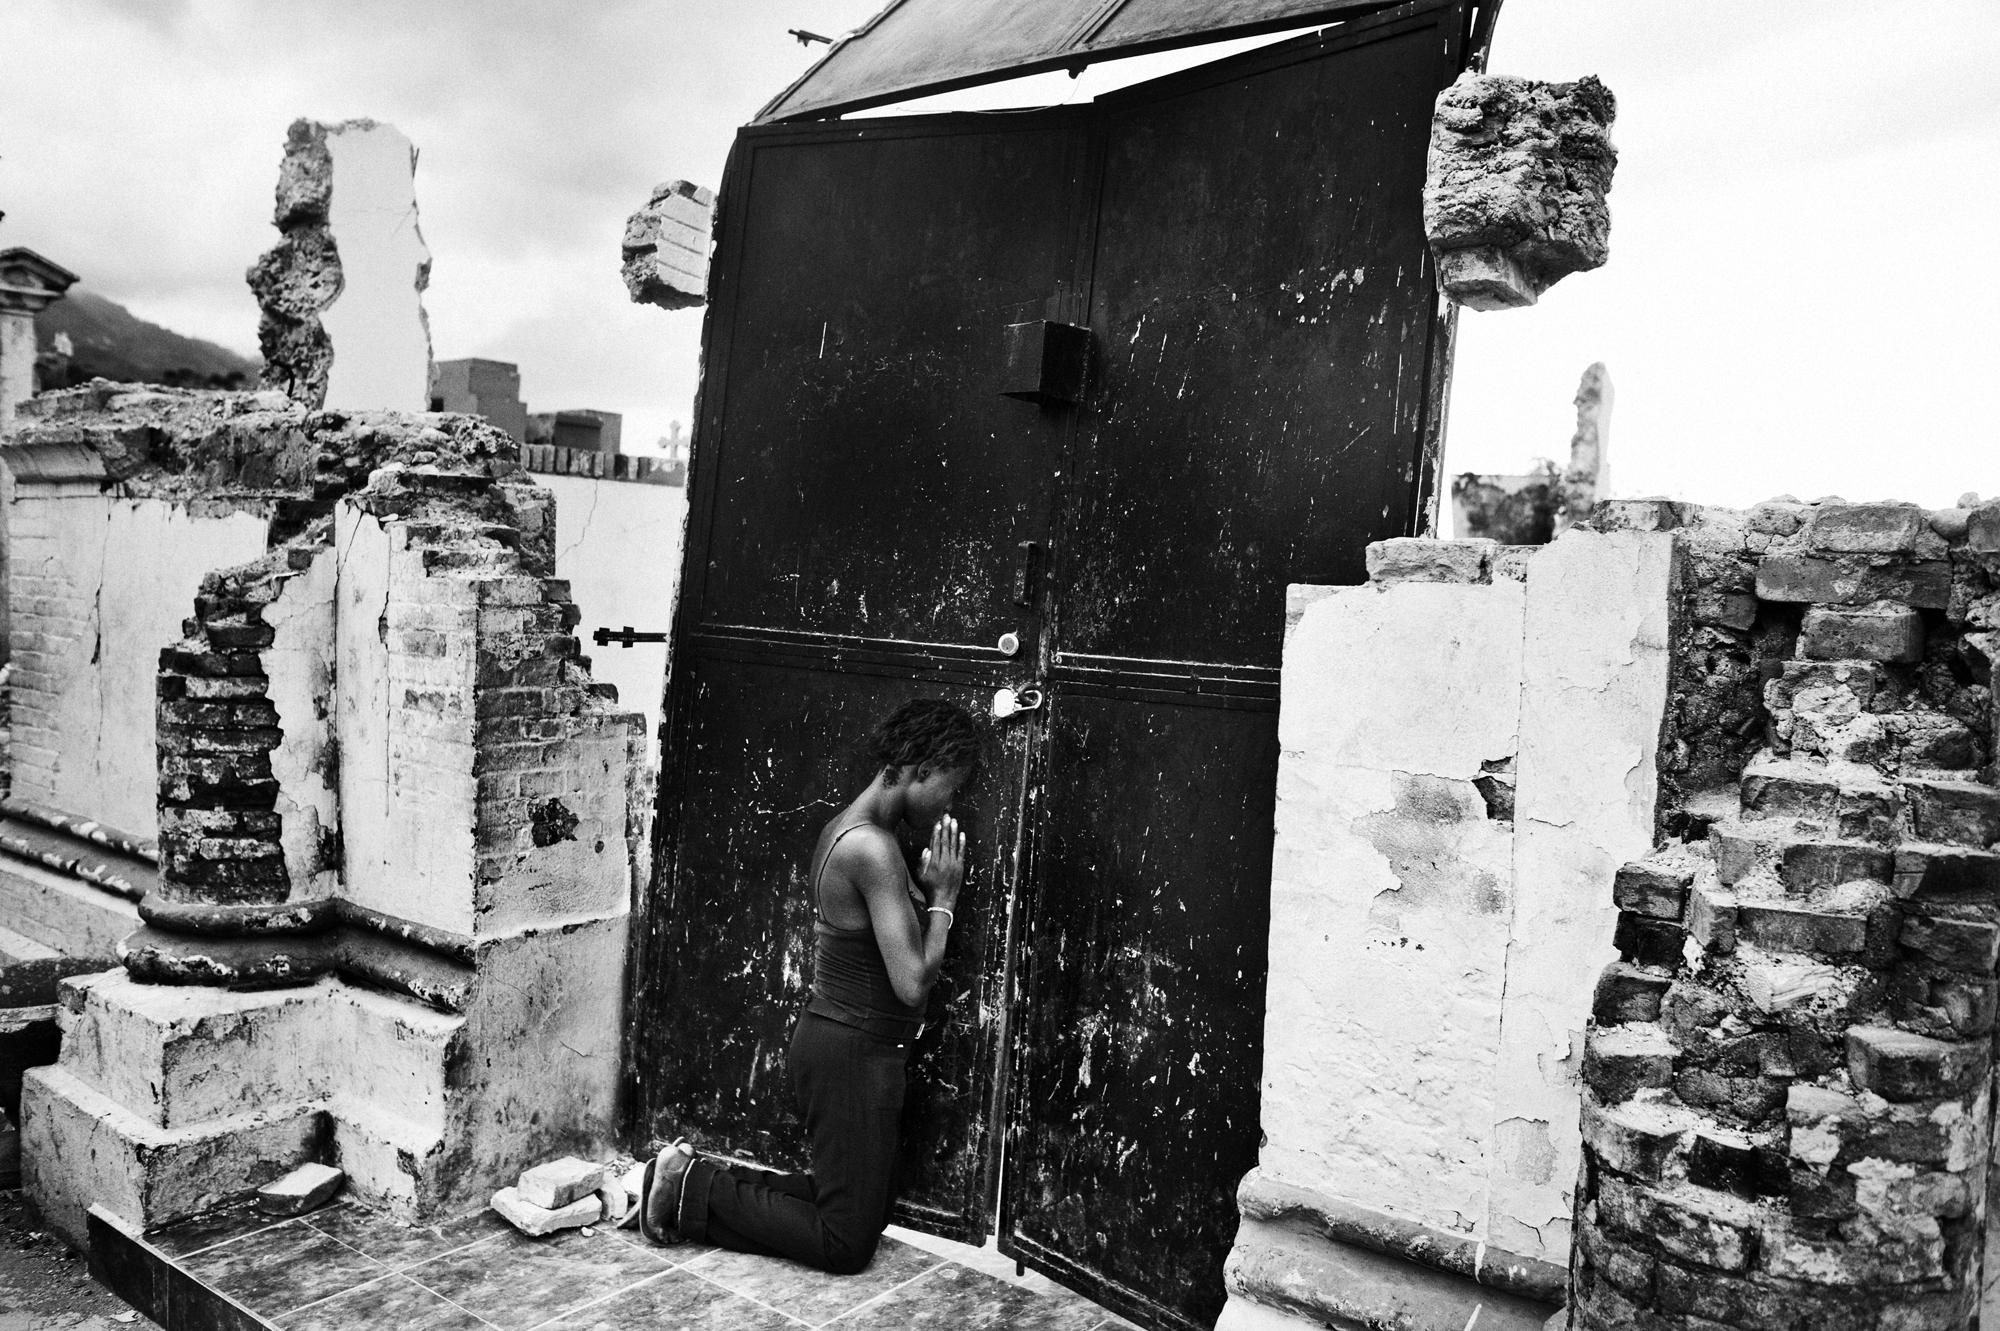 Port au Prince. June 2010. A woman praying at the door of the destroyed church of the Port au Prince cementery.